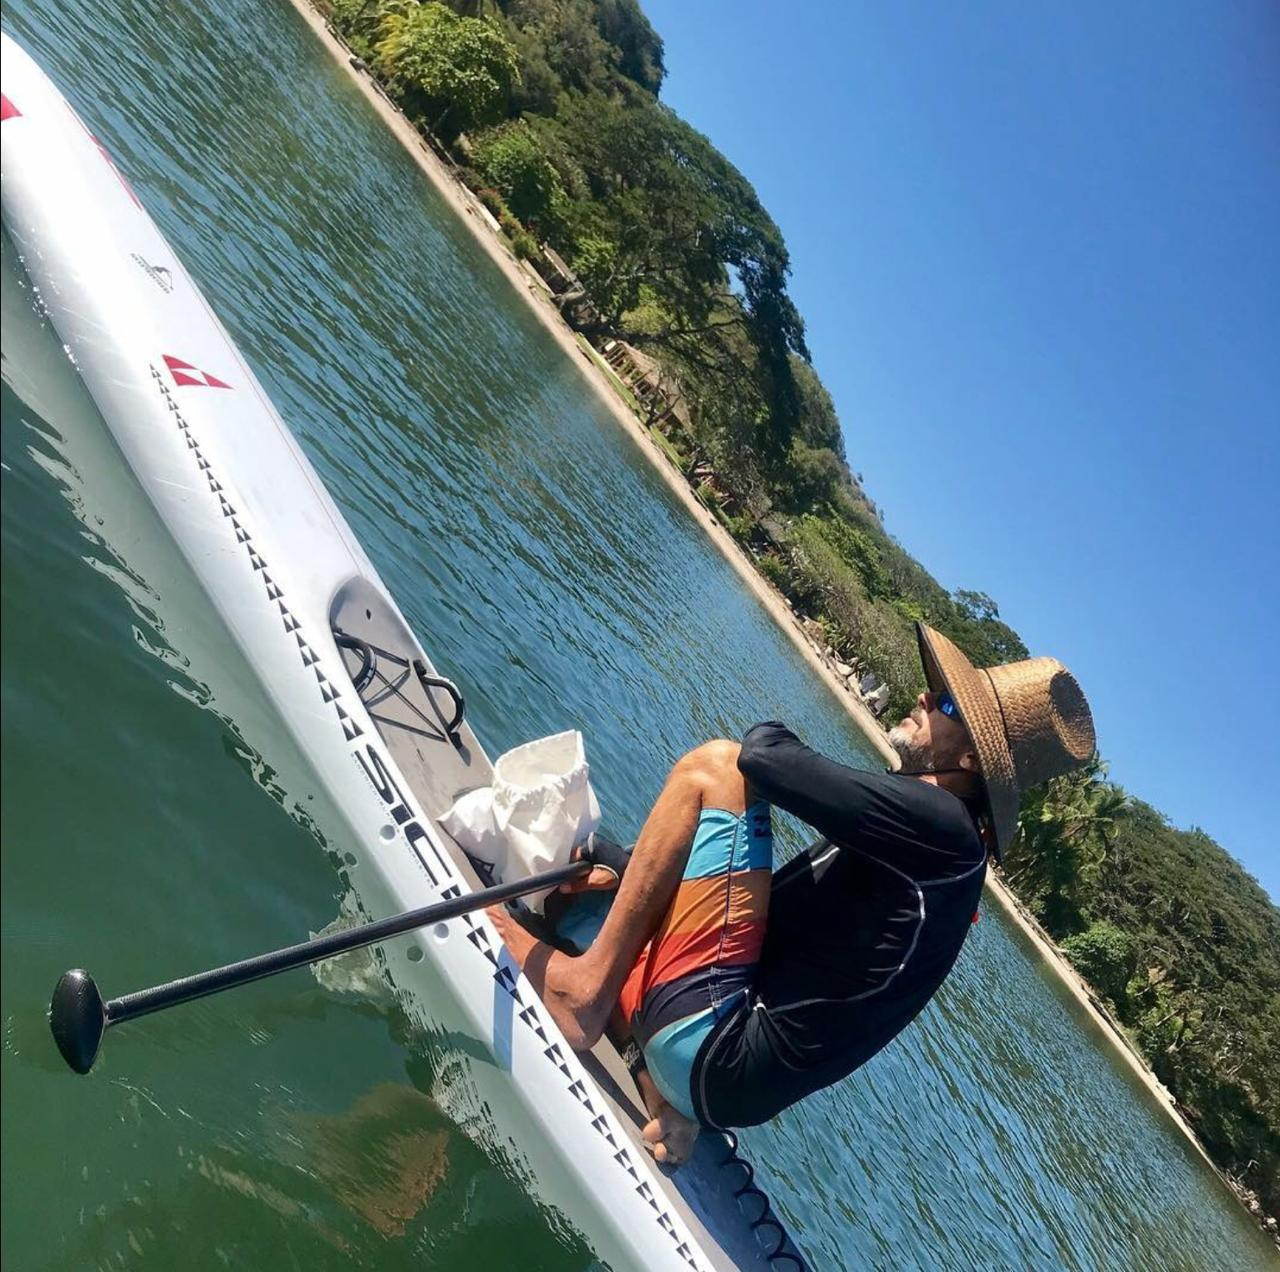 RONALD - Chief Instructor, owner and professional lifeguard for over 25 years. Certified SUP and SURF Instructor. 30 years of experience as a Waterman .